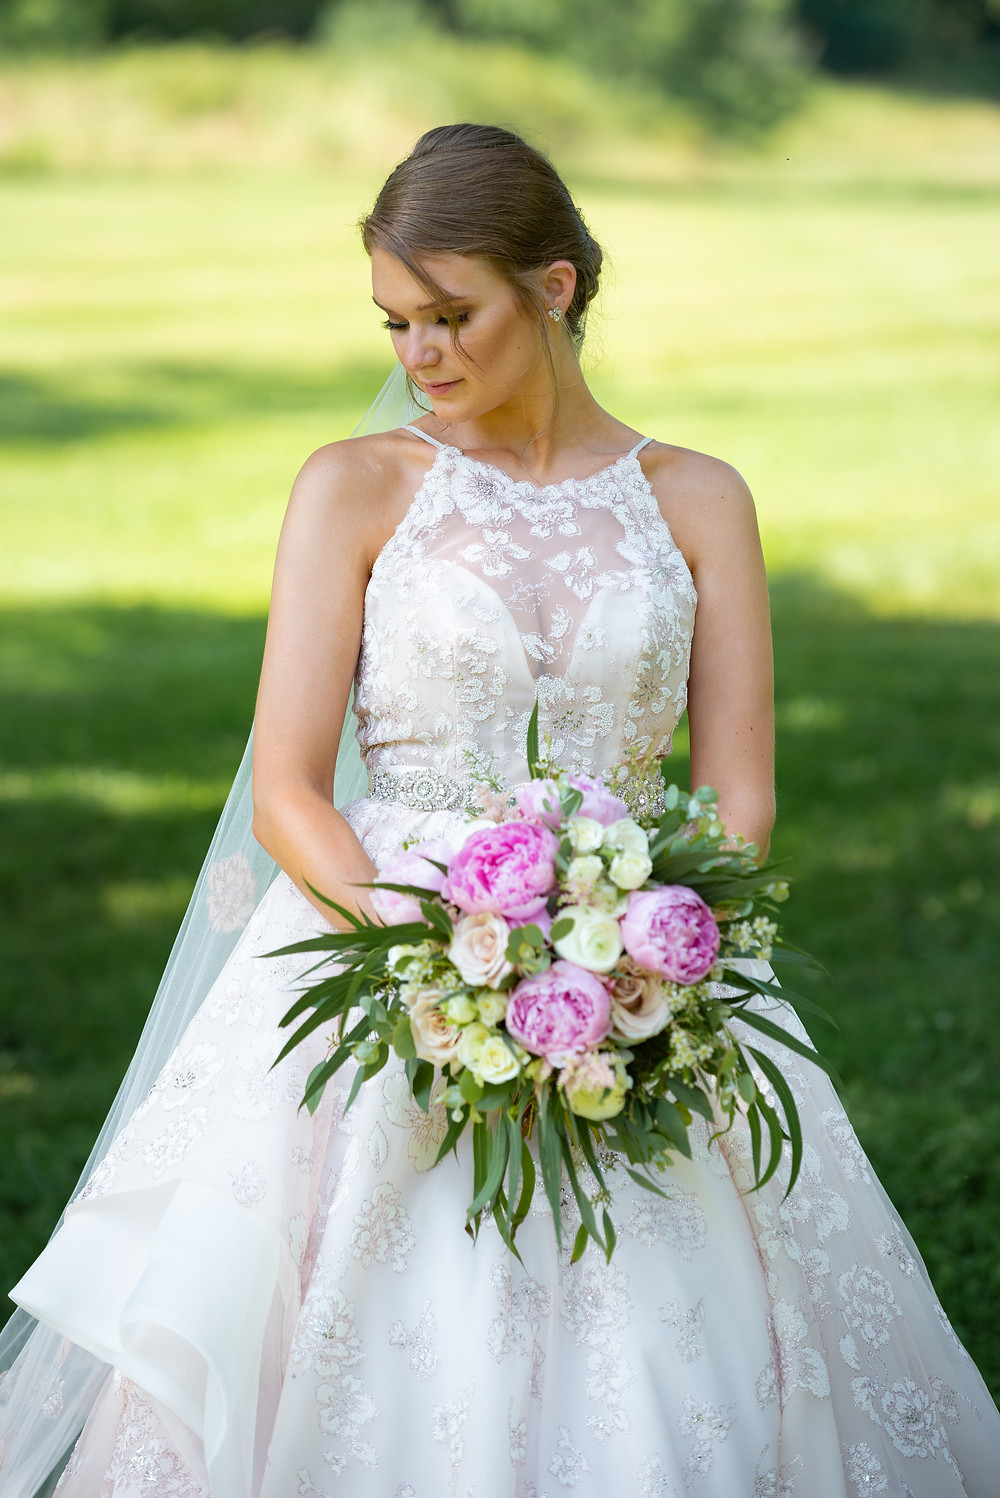 Bridal portrait with bride wearing a pink dress and holding pink peonies